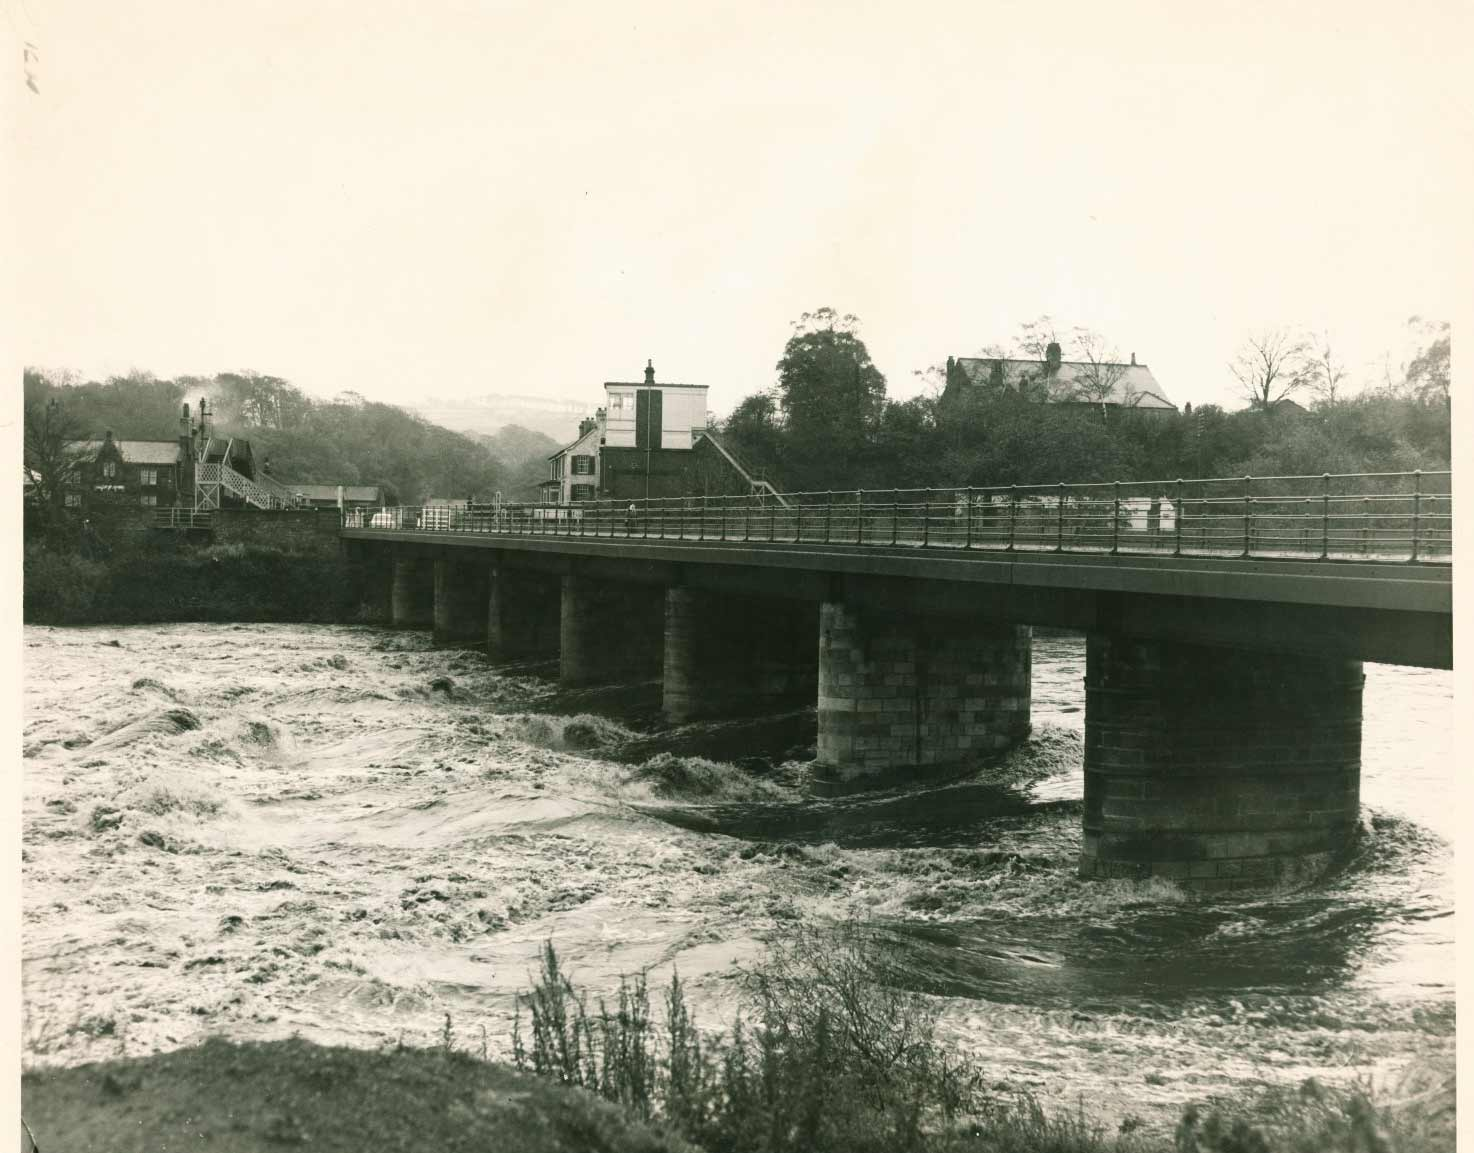 Wylam Bridge from the North East in October 1959